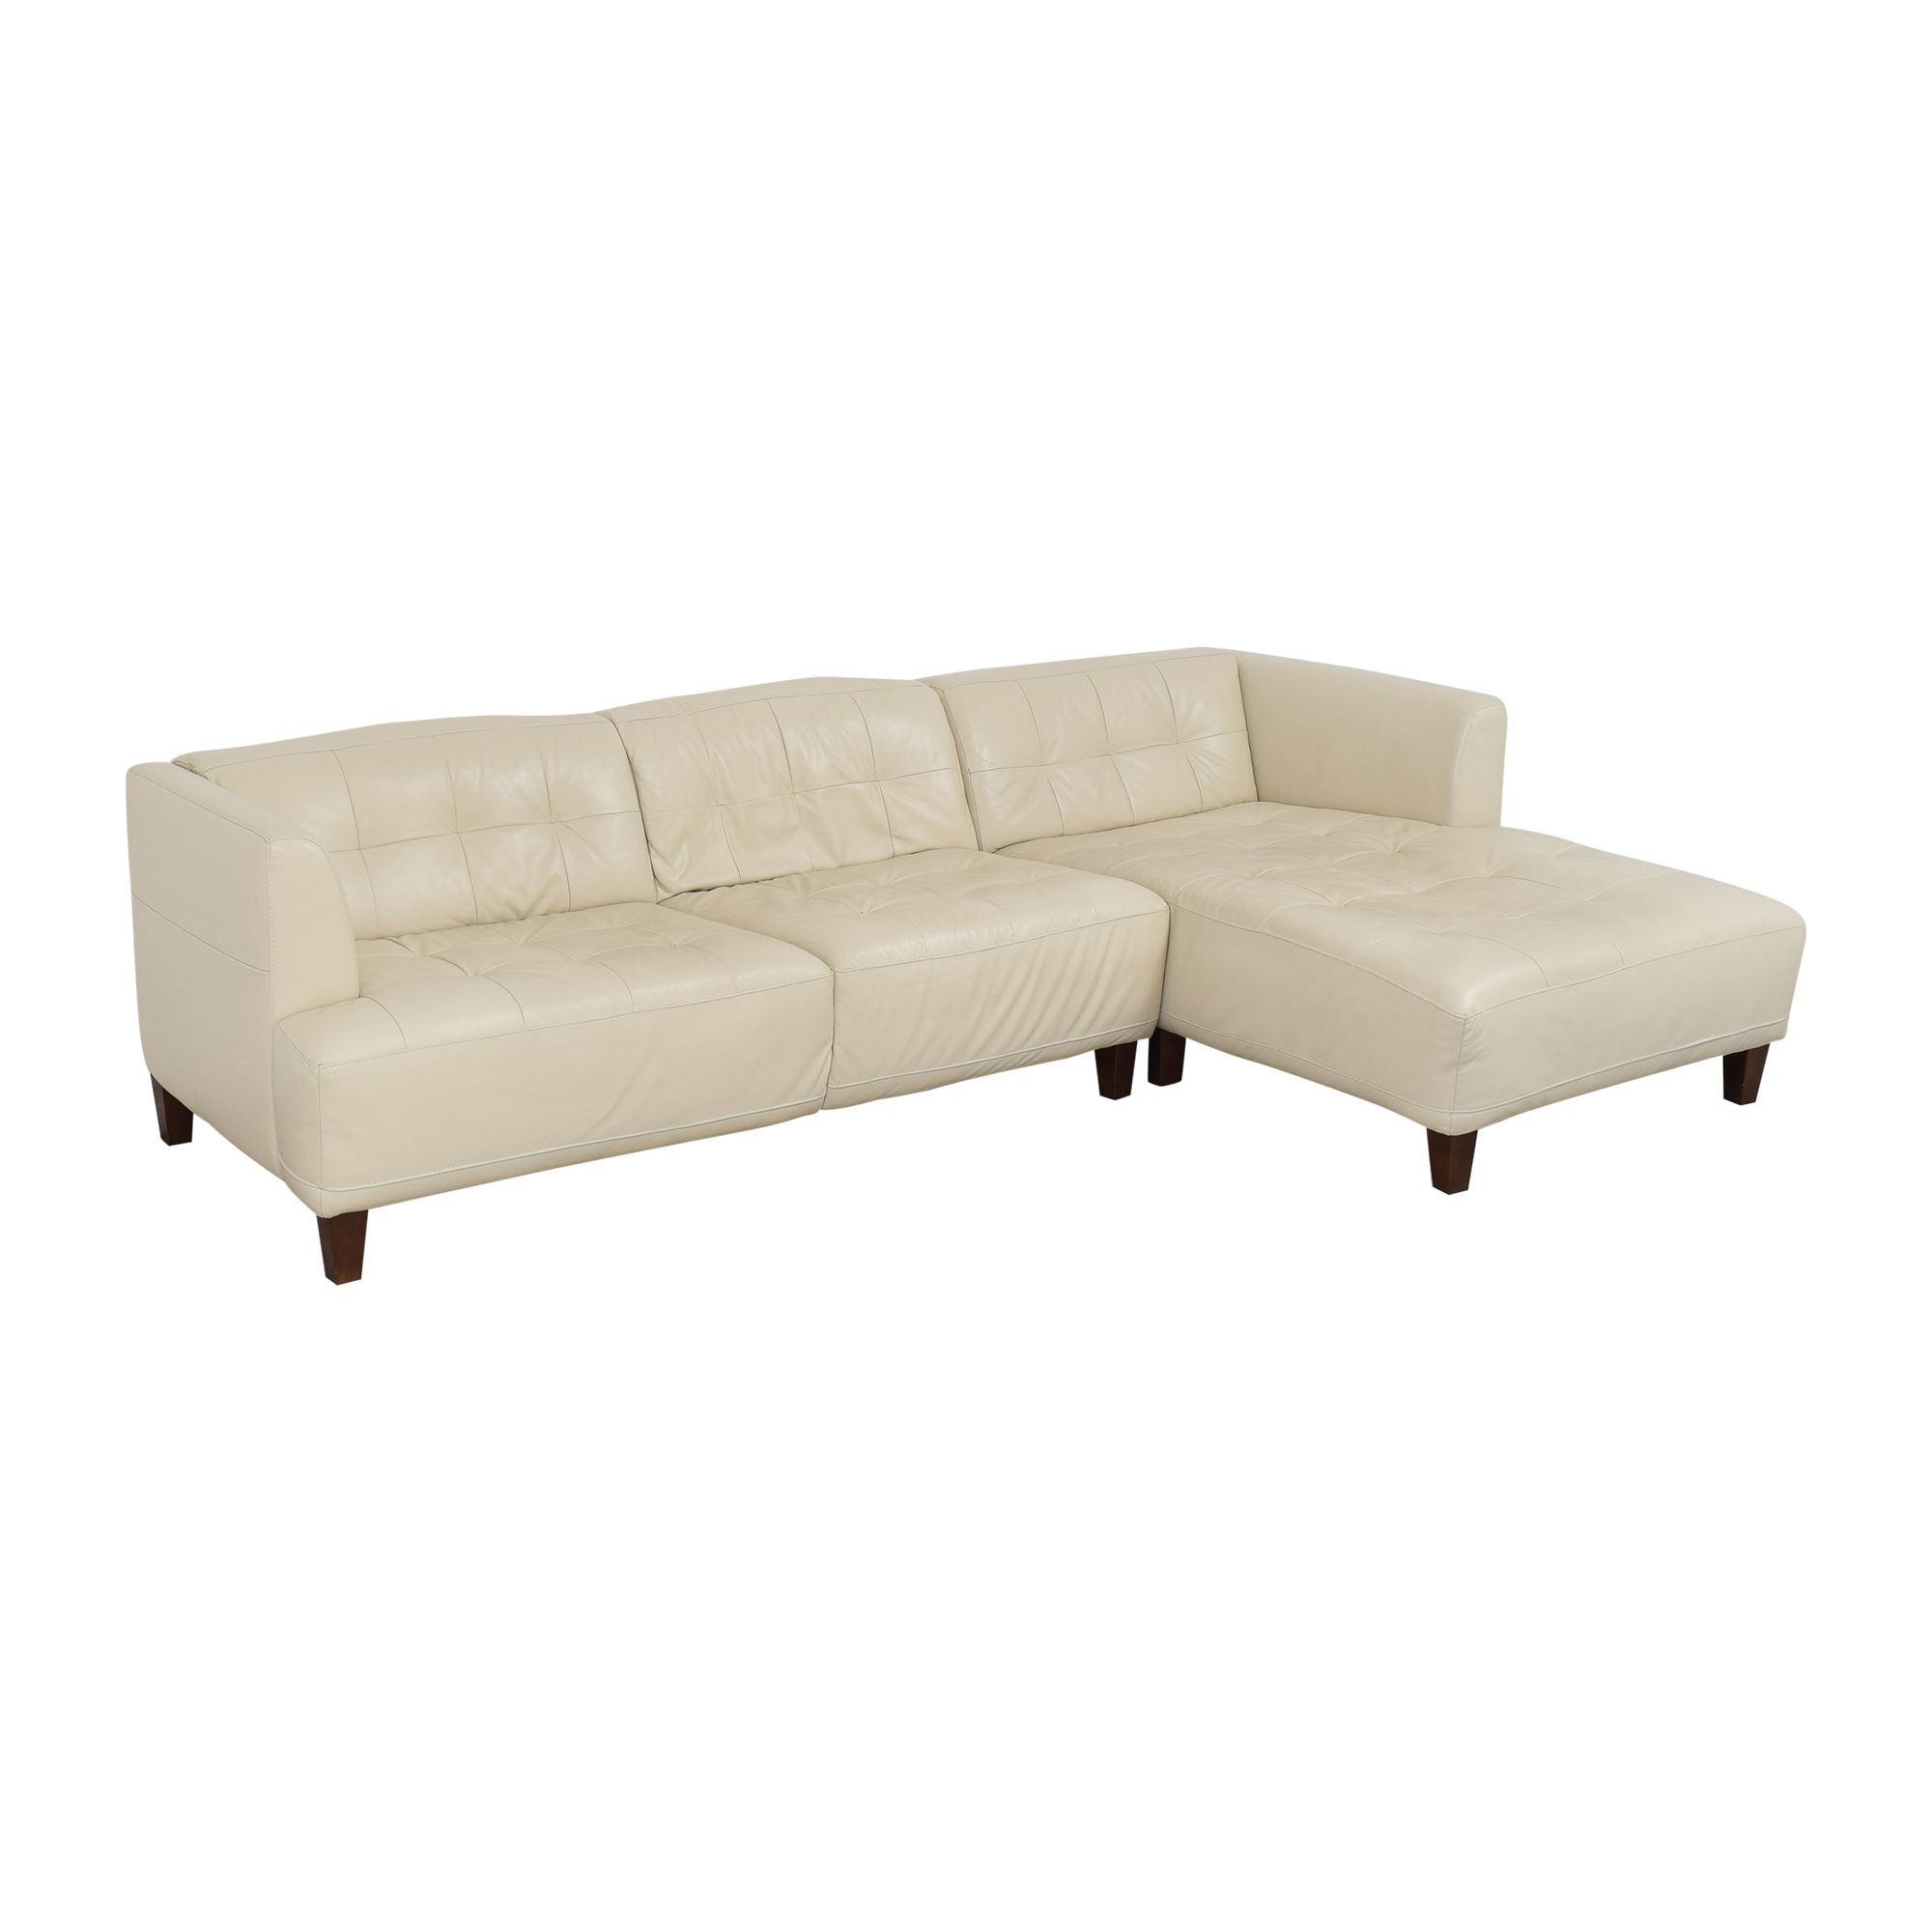 Chateau d'Ax Chateau d'Ax Chaise Sectional Sofa on sale